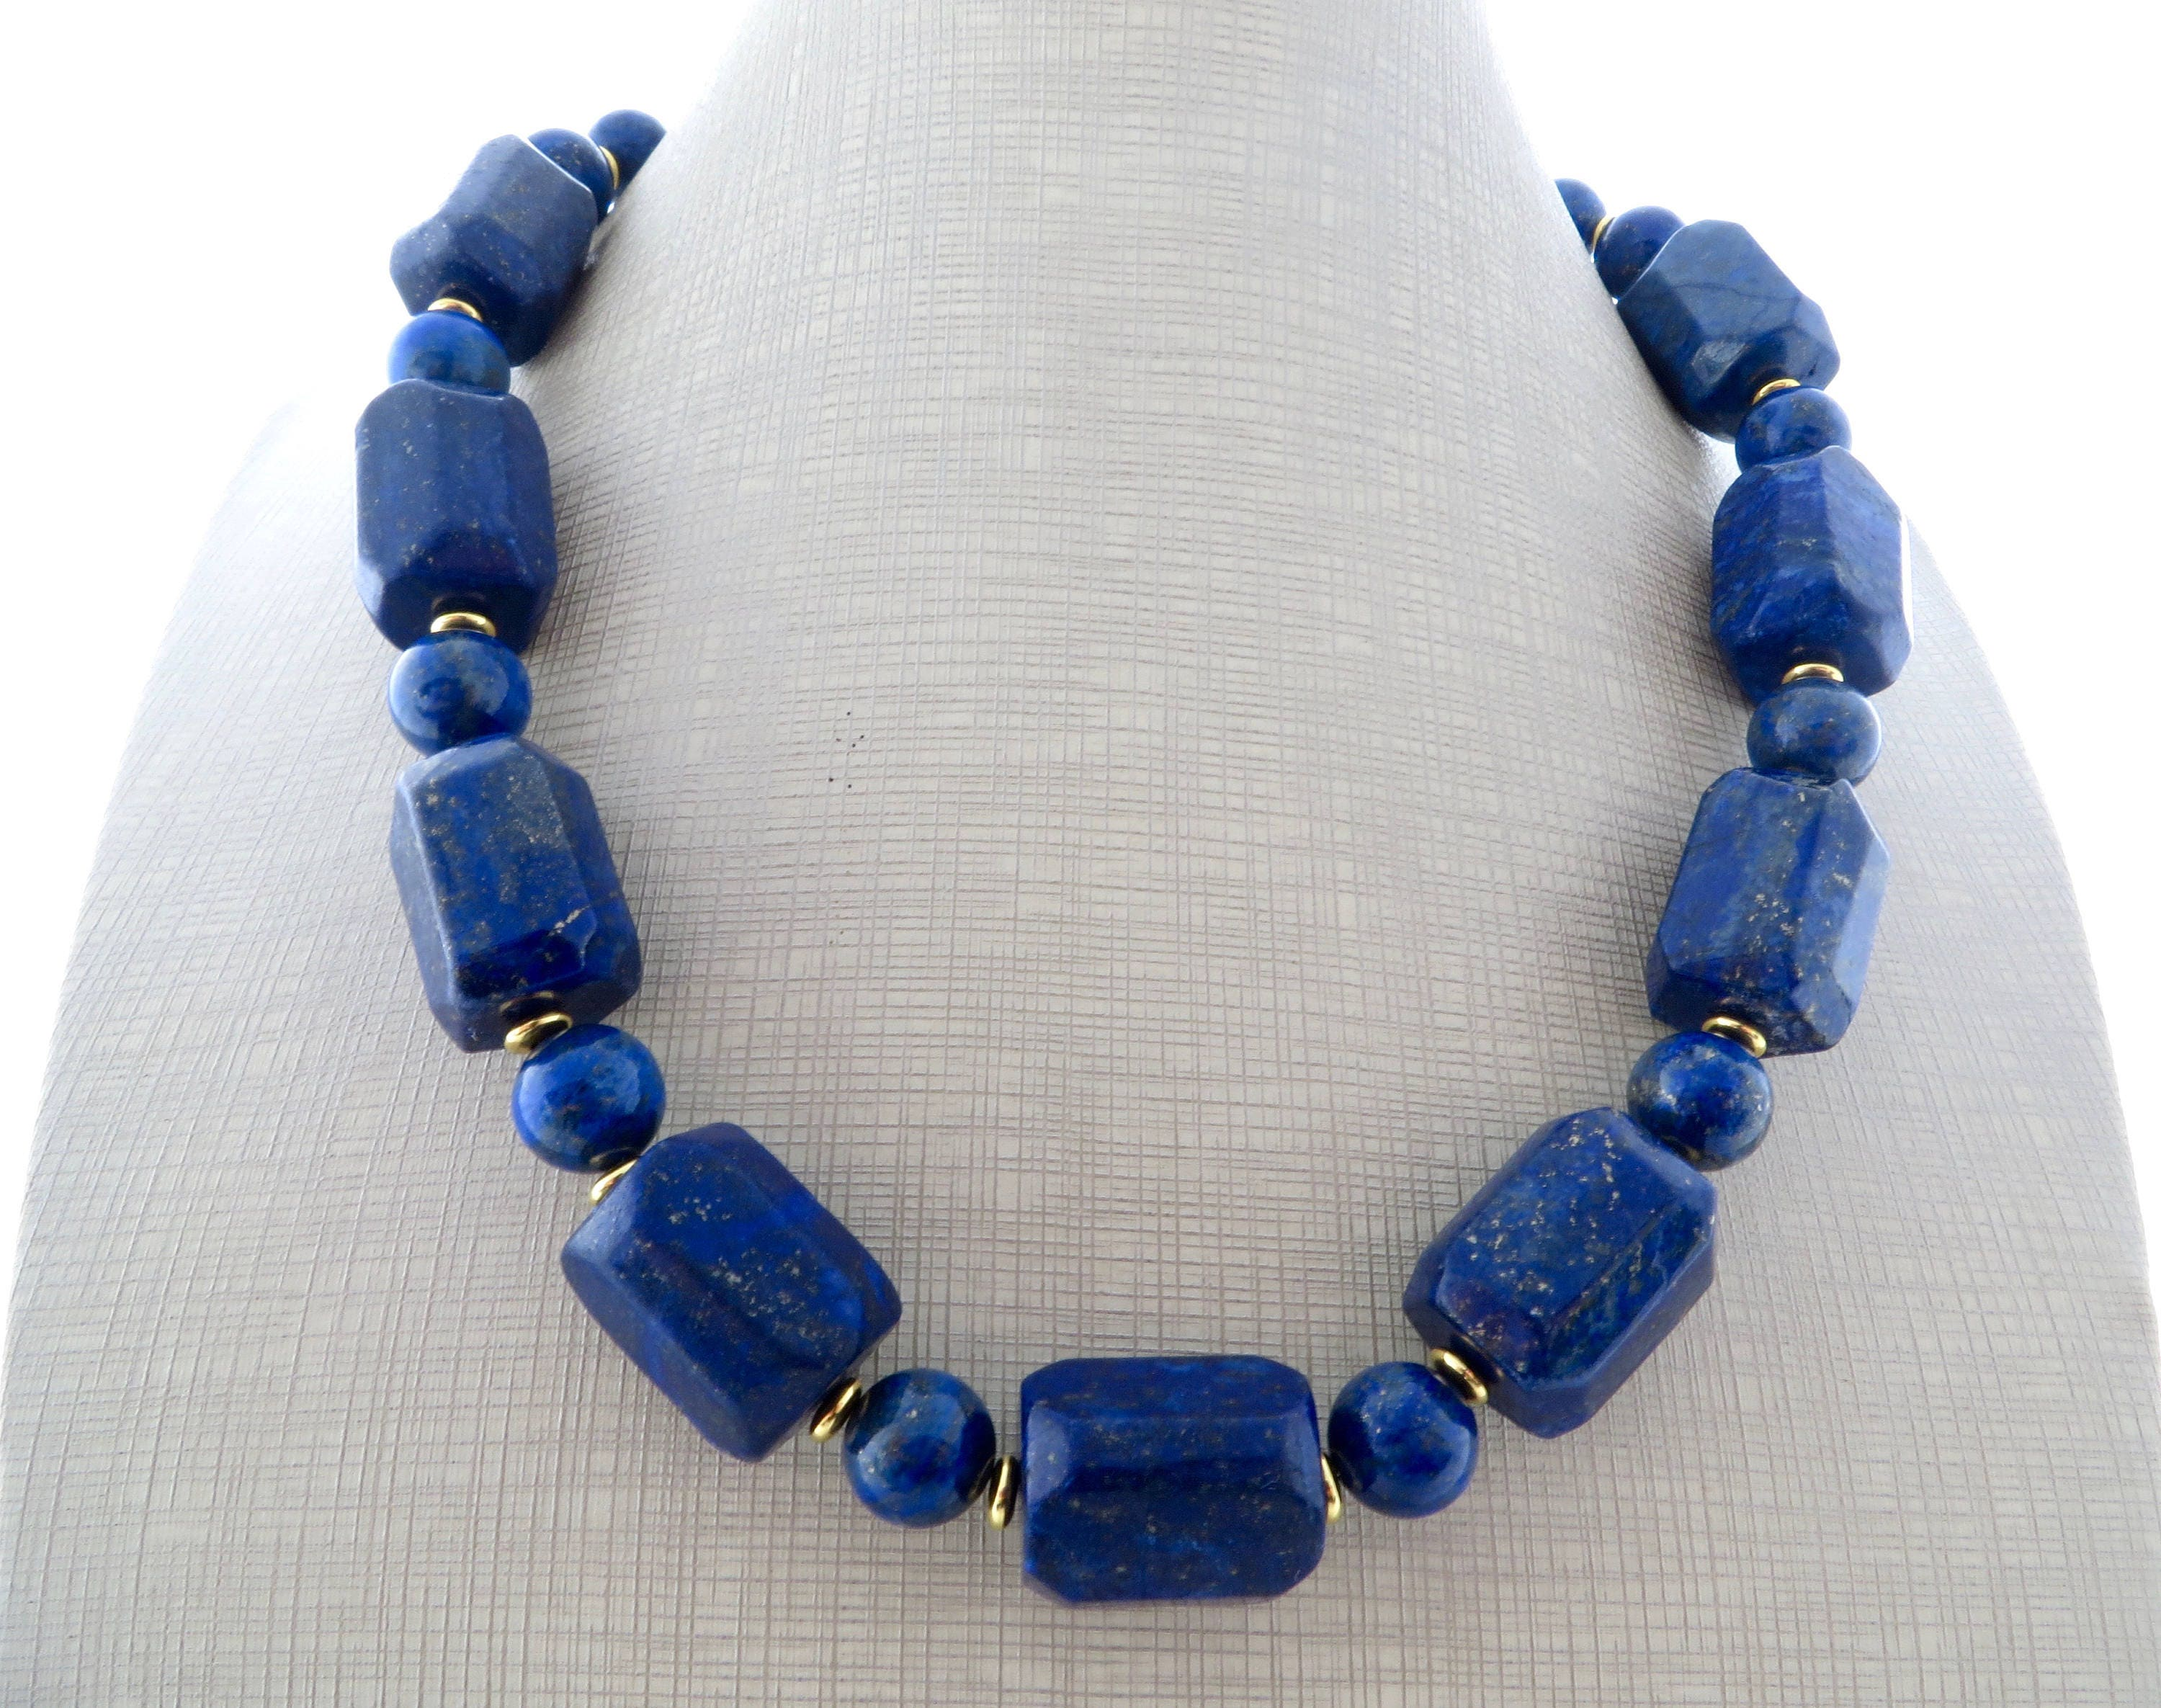 s beaded bead womens glass men flora necklace product blue mens multi beads women